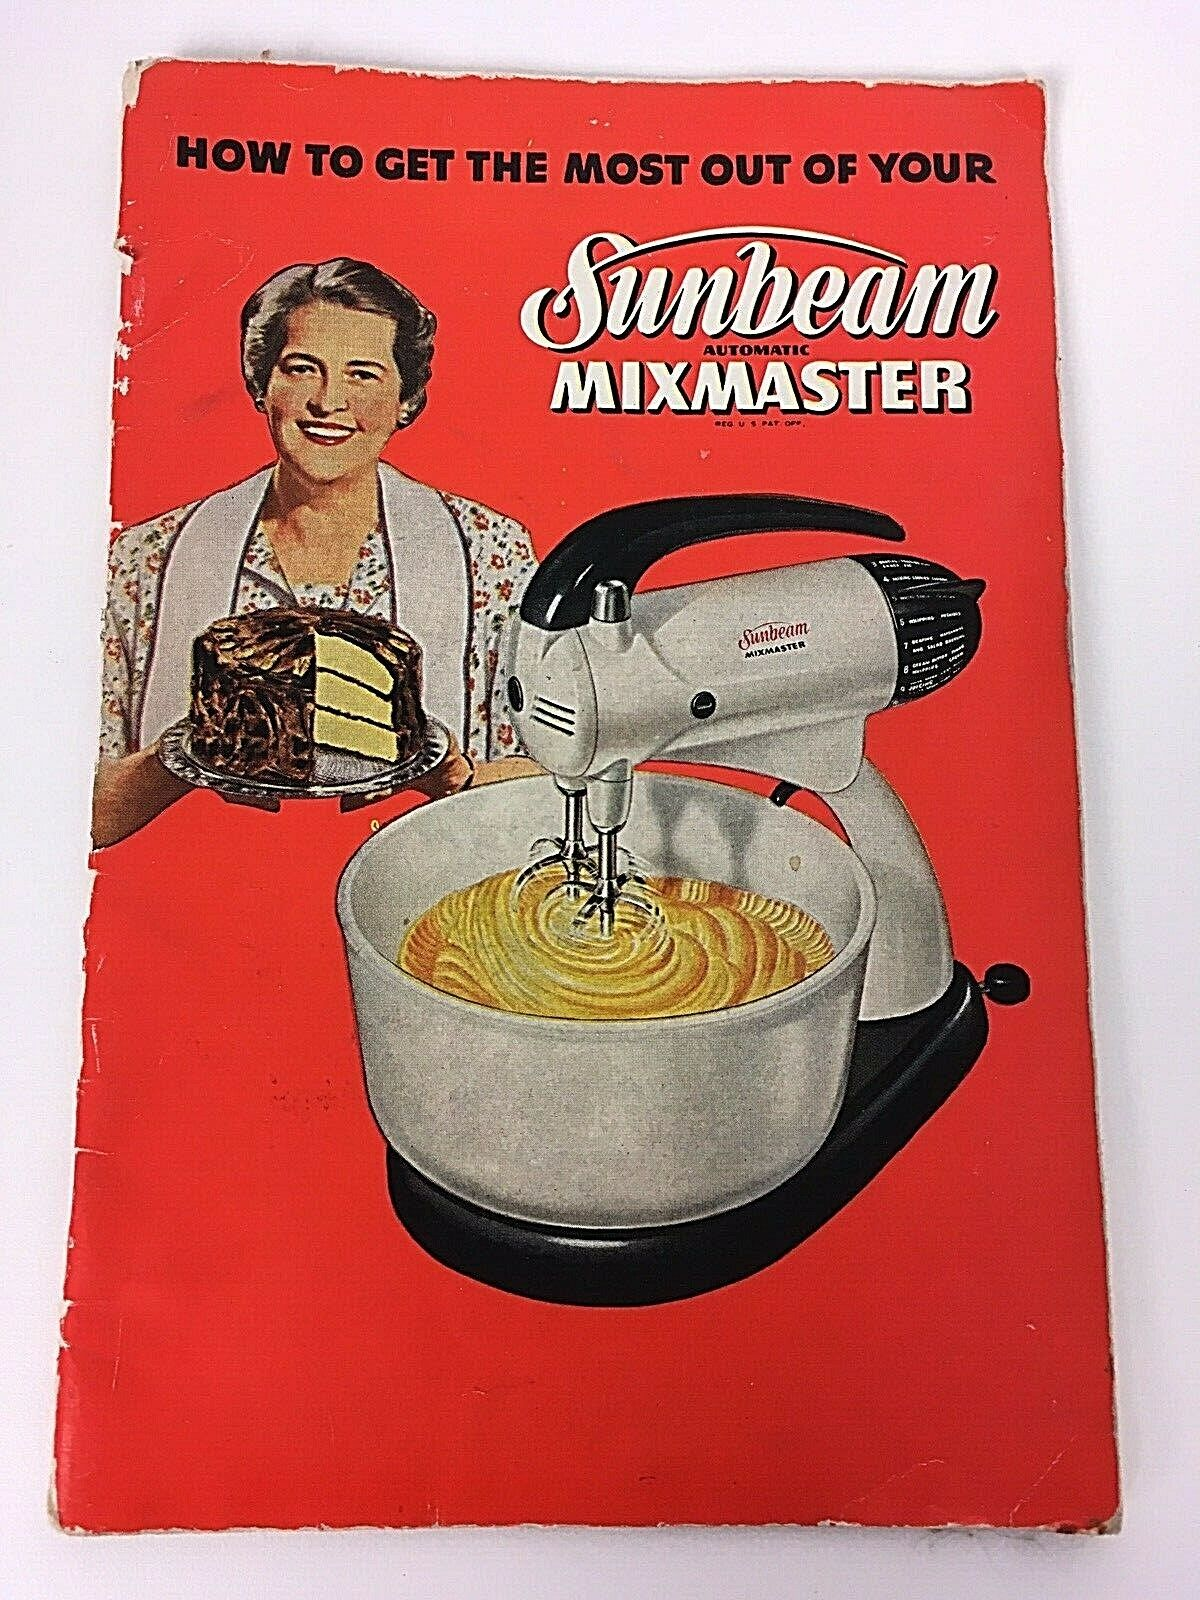 1950 Recipes How To Get The Most Out Of Your Sunbeam Mixmaster Booklet Baking  - $6.95